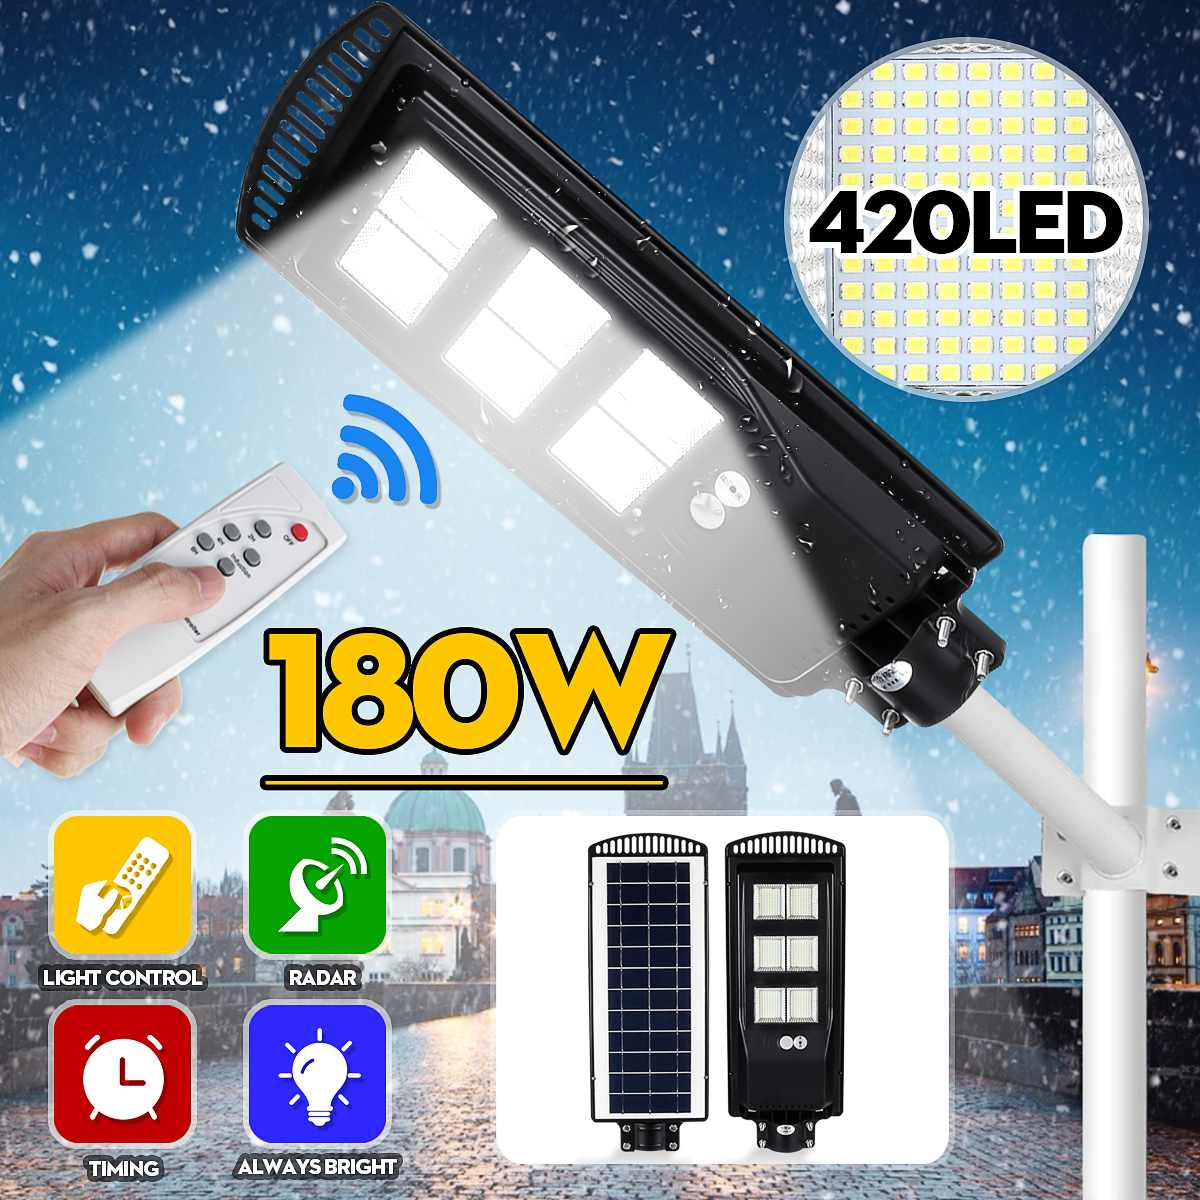 New LED Street Light 80/140/180W LED Solar Light Wall Lamp Rada R PIR Motion Sensor Wall Timing Lamp+Remote Waterproof For Garde